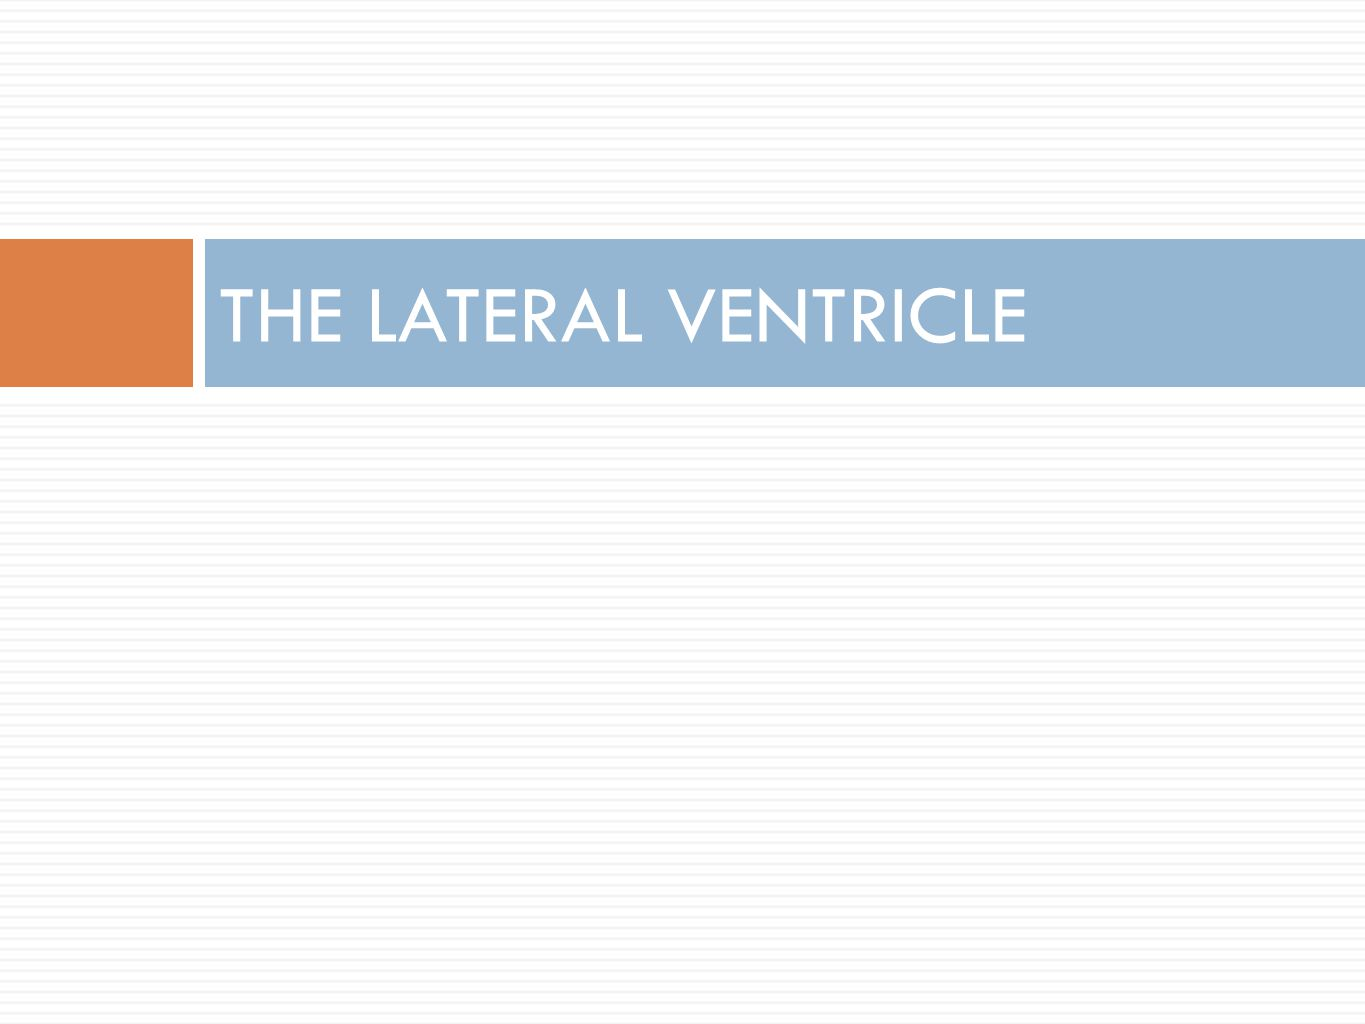 THE LATERAL VENTRICLE